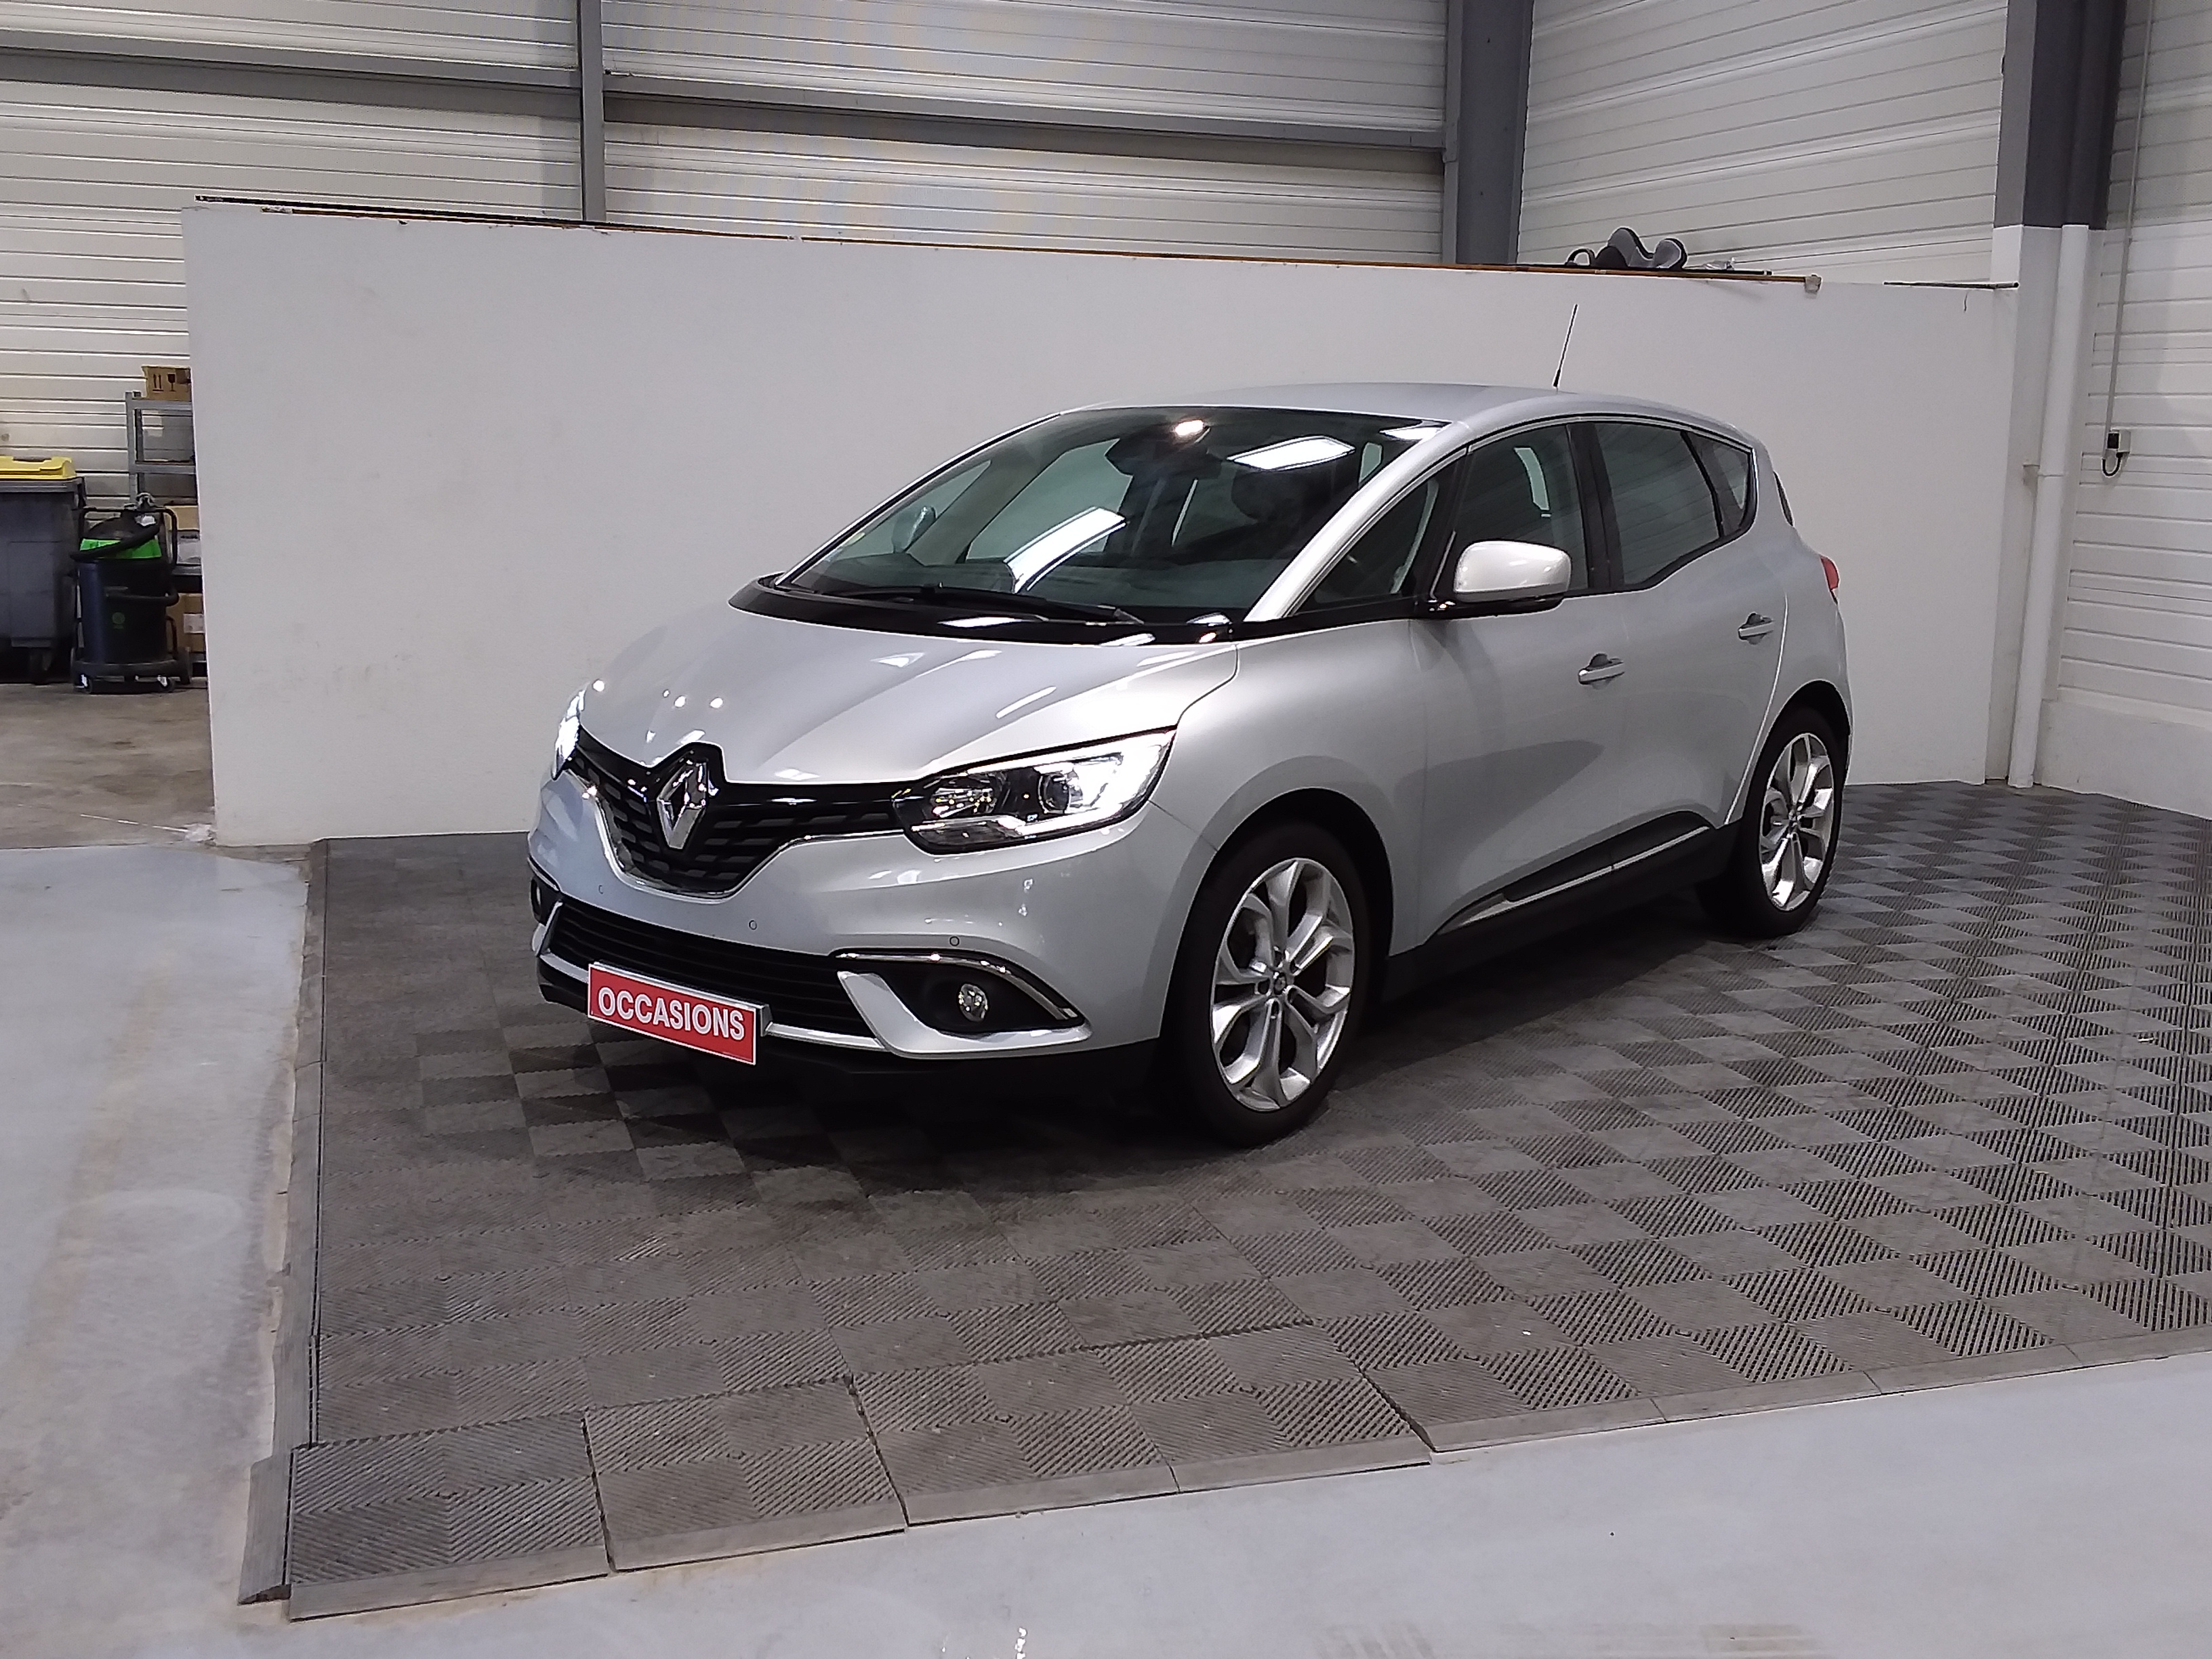 RENAULT SCENIC IV BUSINESS dCi 110 Energy Business d'occasion